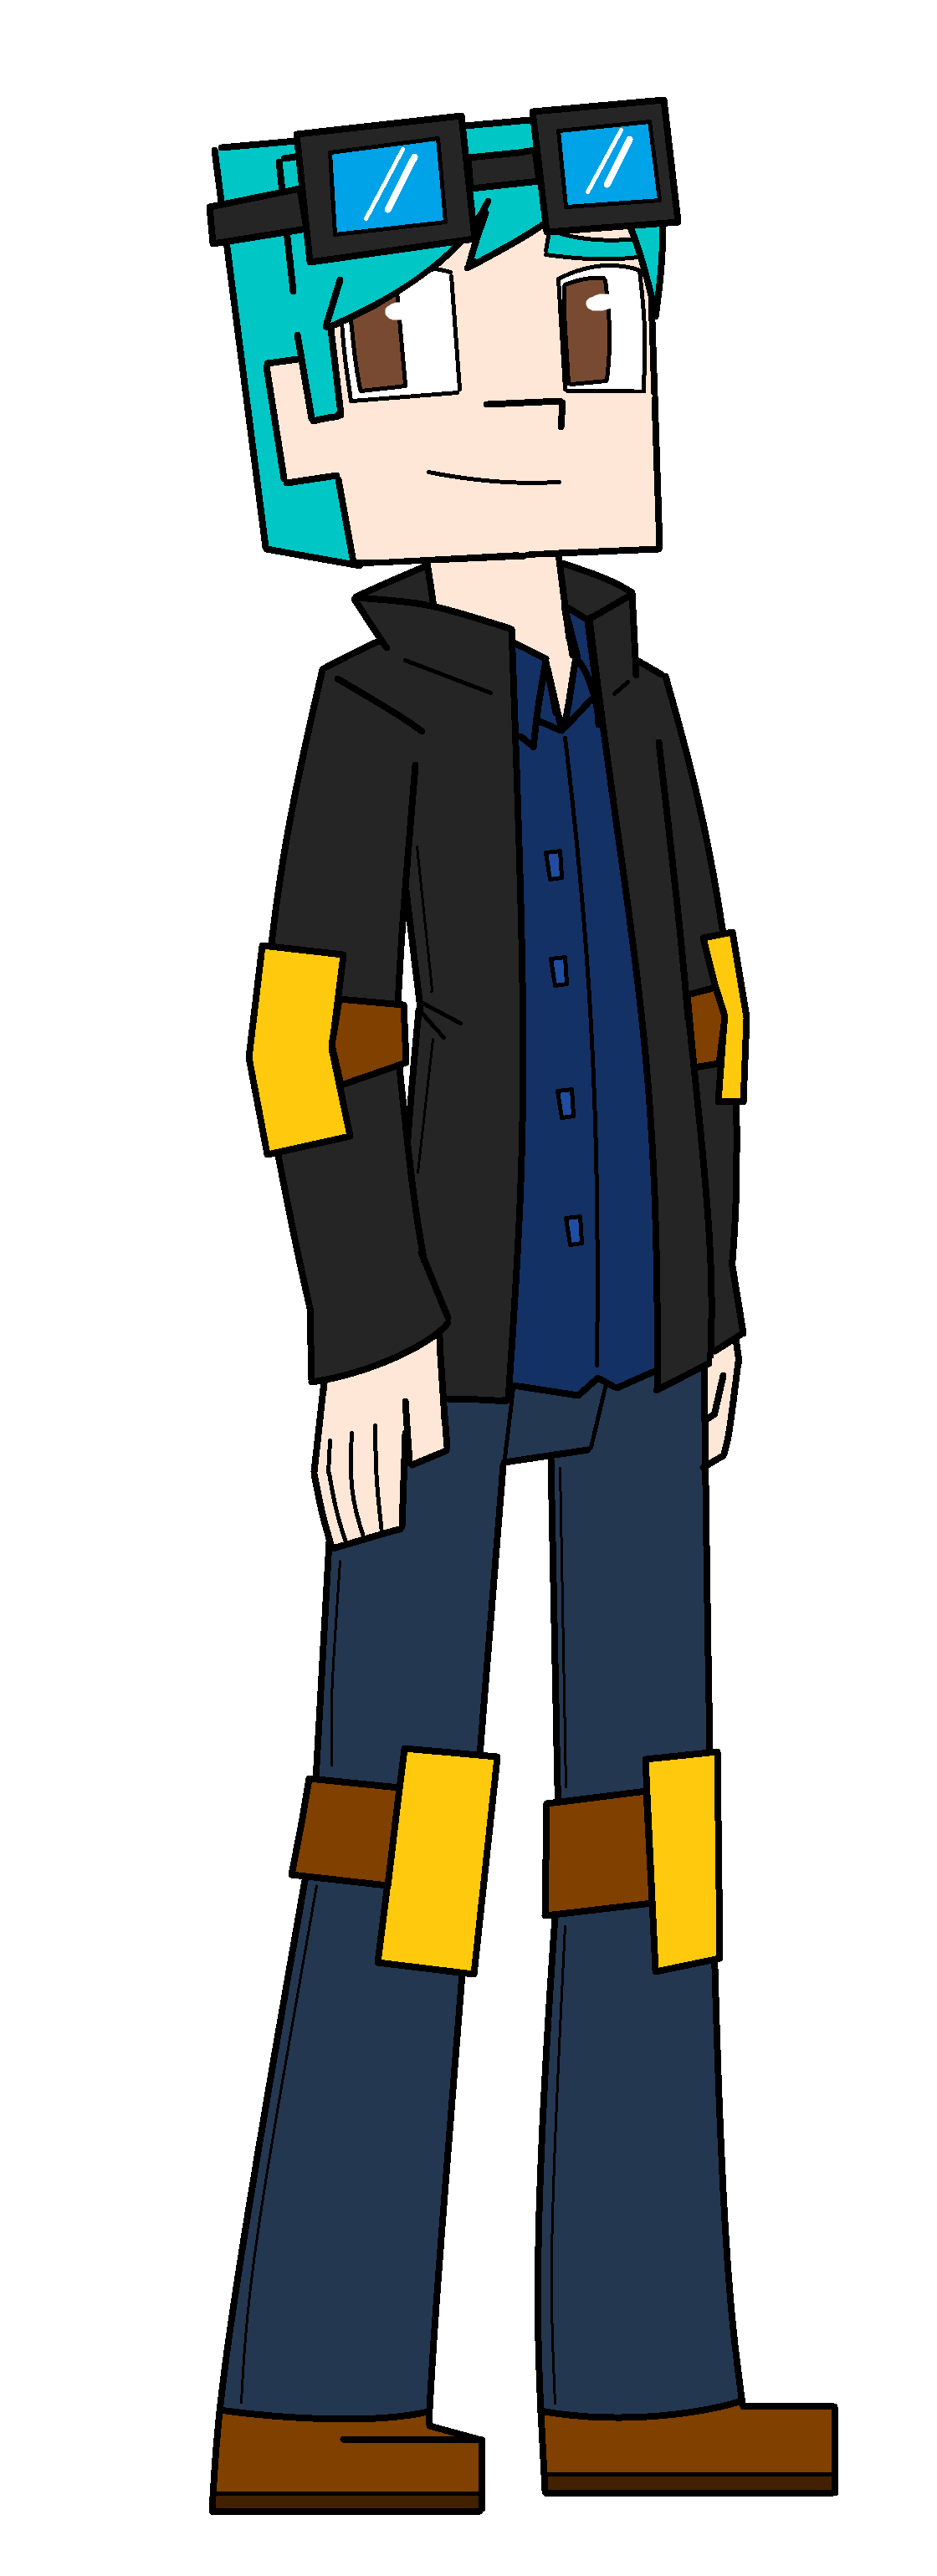 Minecraft Story Mode Dan In Episode 6 By Prettyxthexartist On